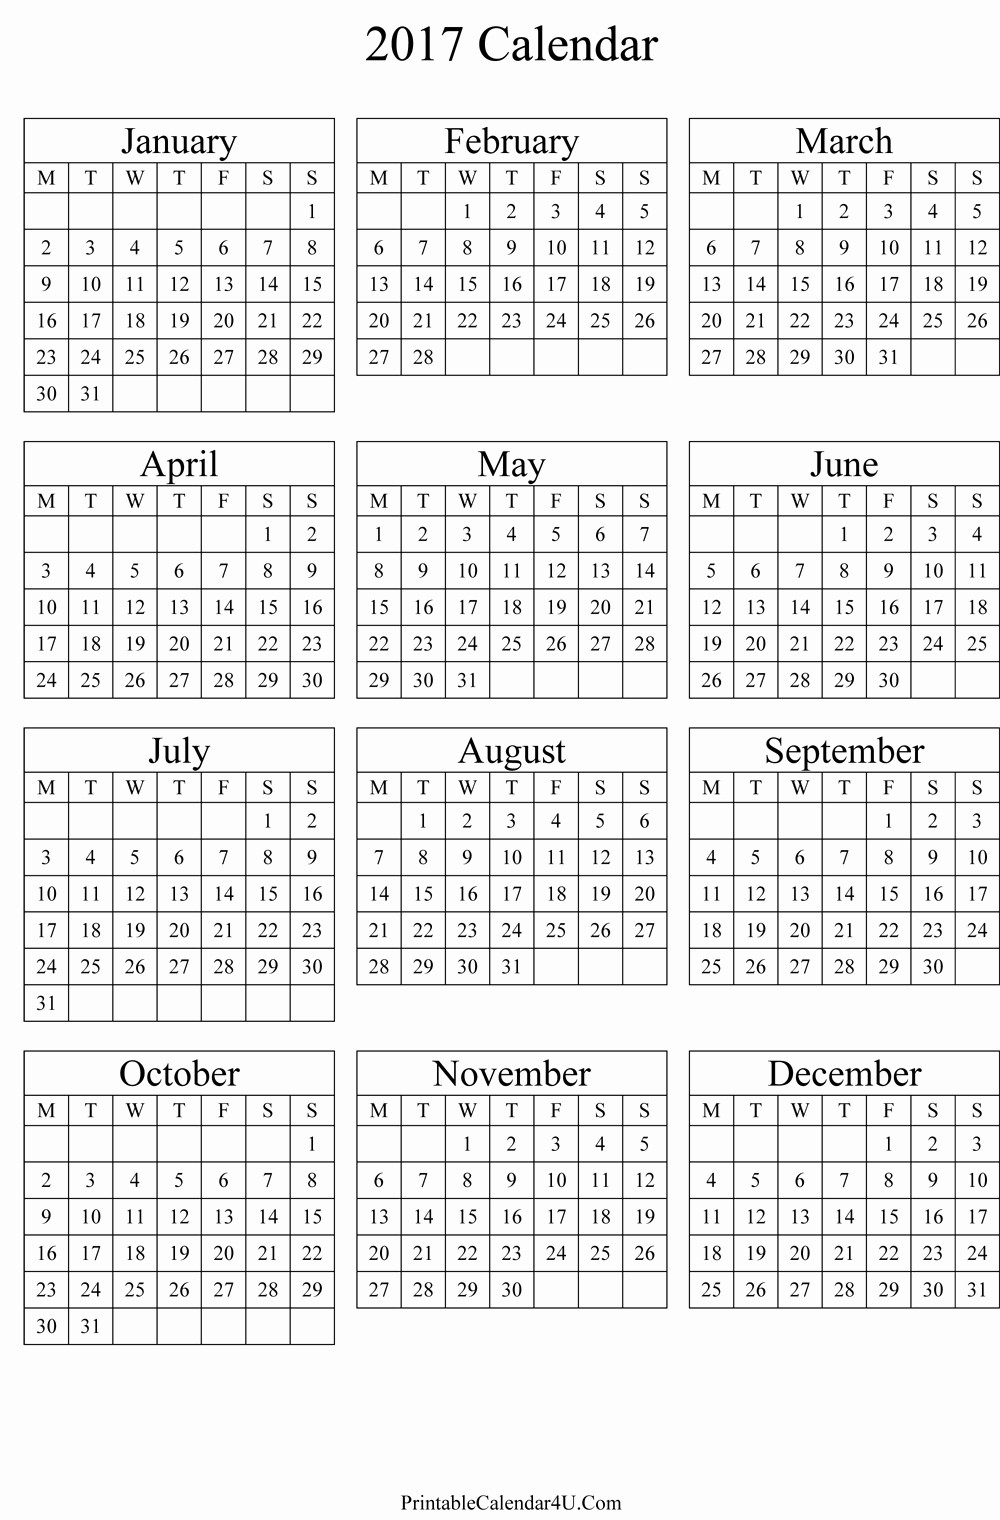 Printable 4 Month Calendar 2017 Best Of Annual Calendar 2017 Portrait Printable Calendar 2019 2020